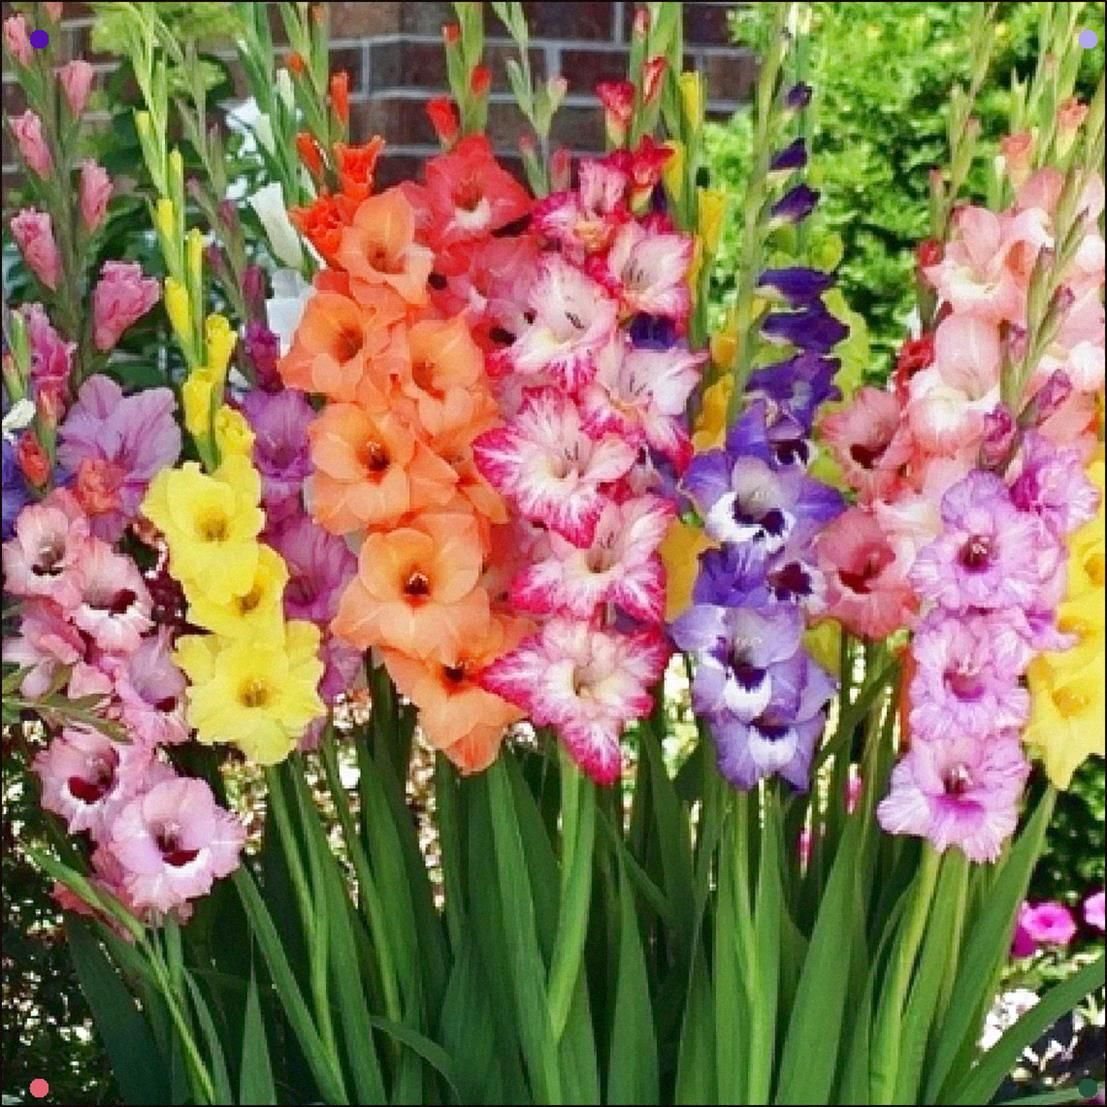 Gladiolus Flower Bulbs Rainbow Mix In 2020 Gladiolus Flower Bulb Flowers Gladiolus